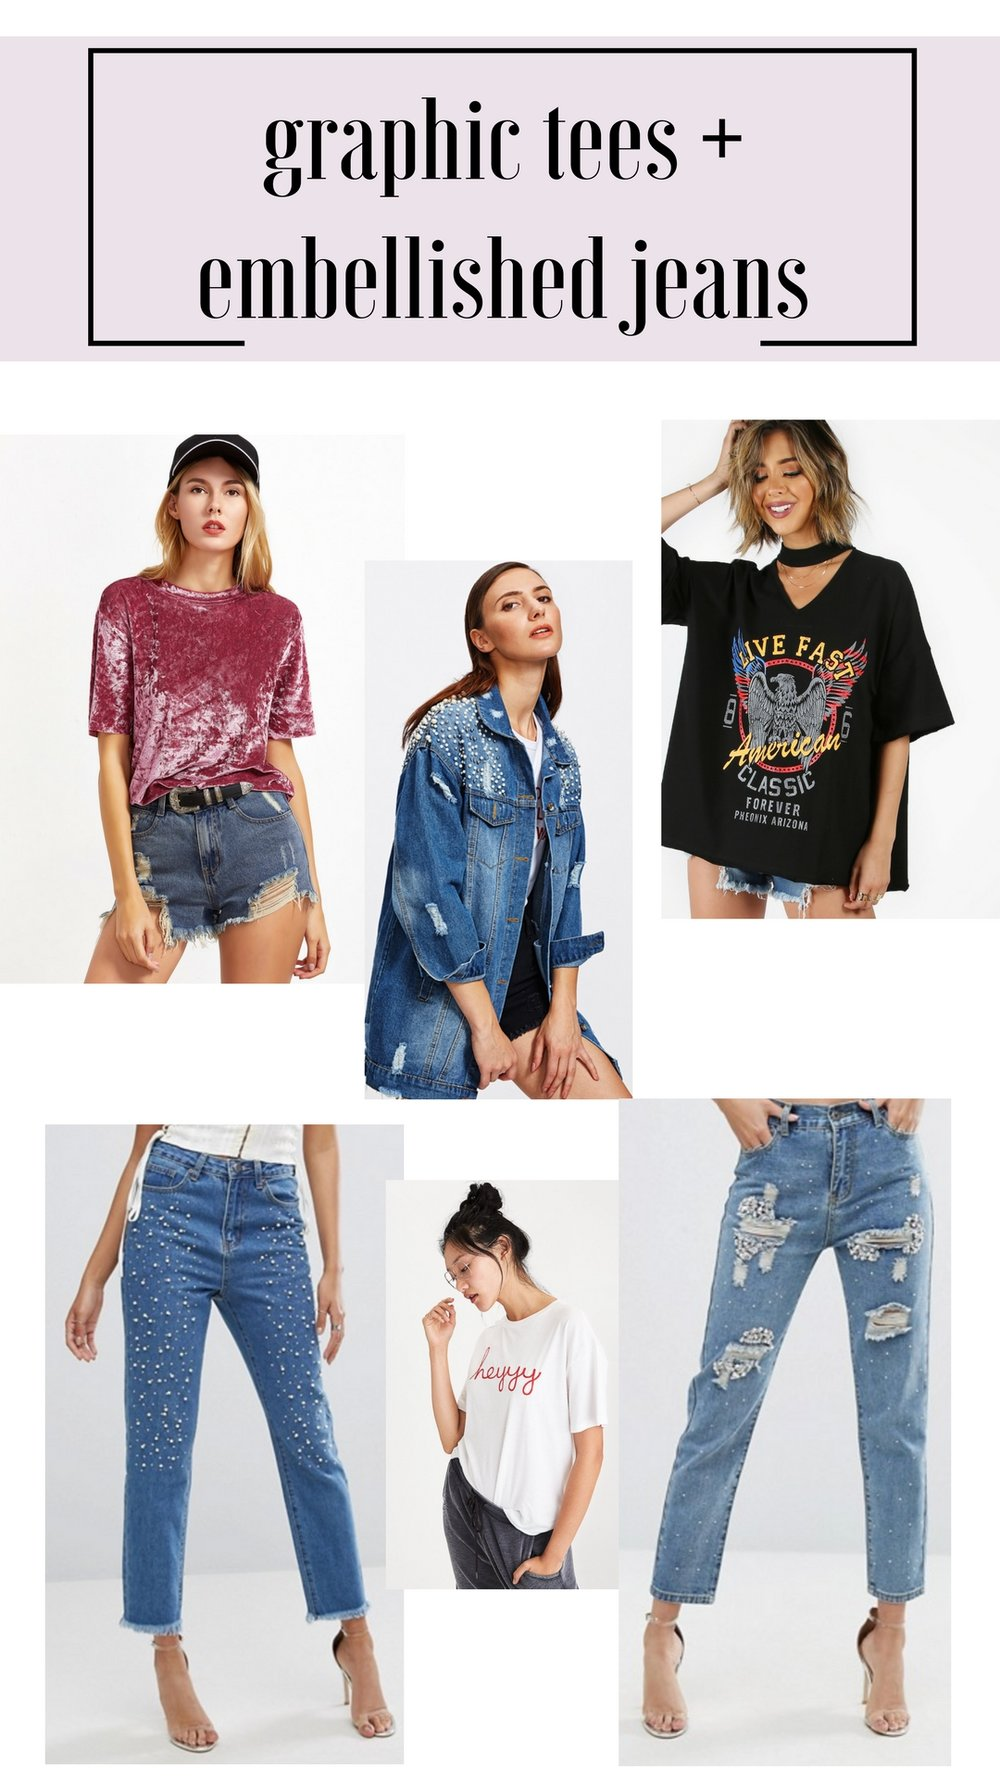 Graphic Tees and Embellished Jeans_Trends for Fall 2017.jpg